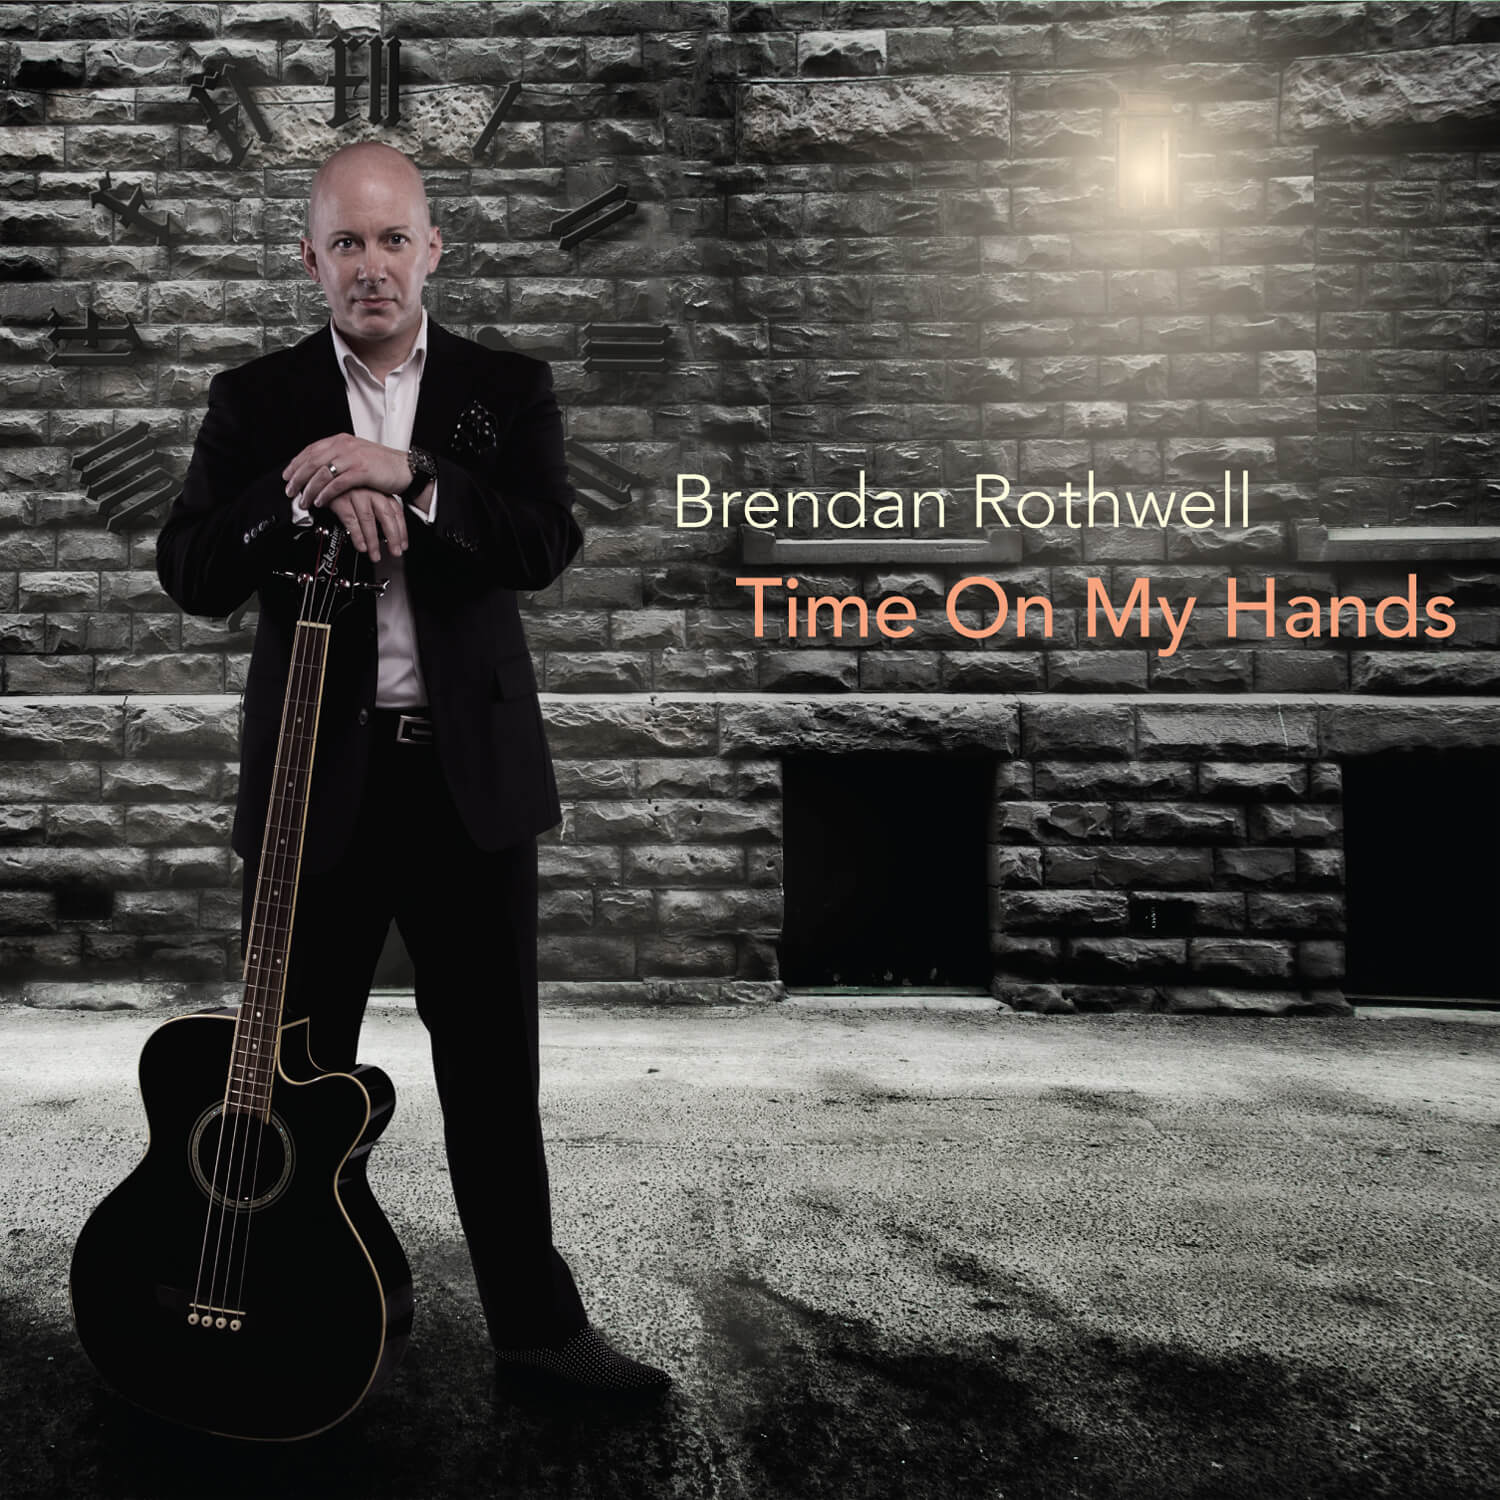 Brendan Rothwell New Album Time On My Hands